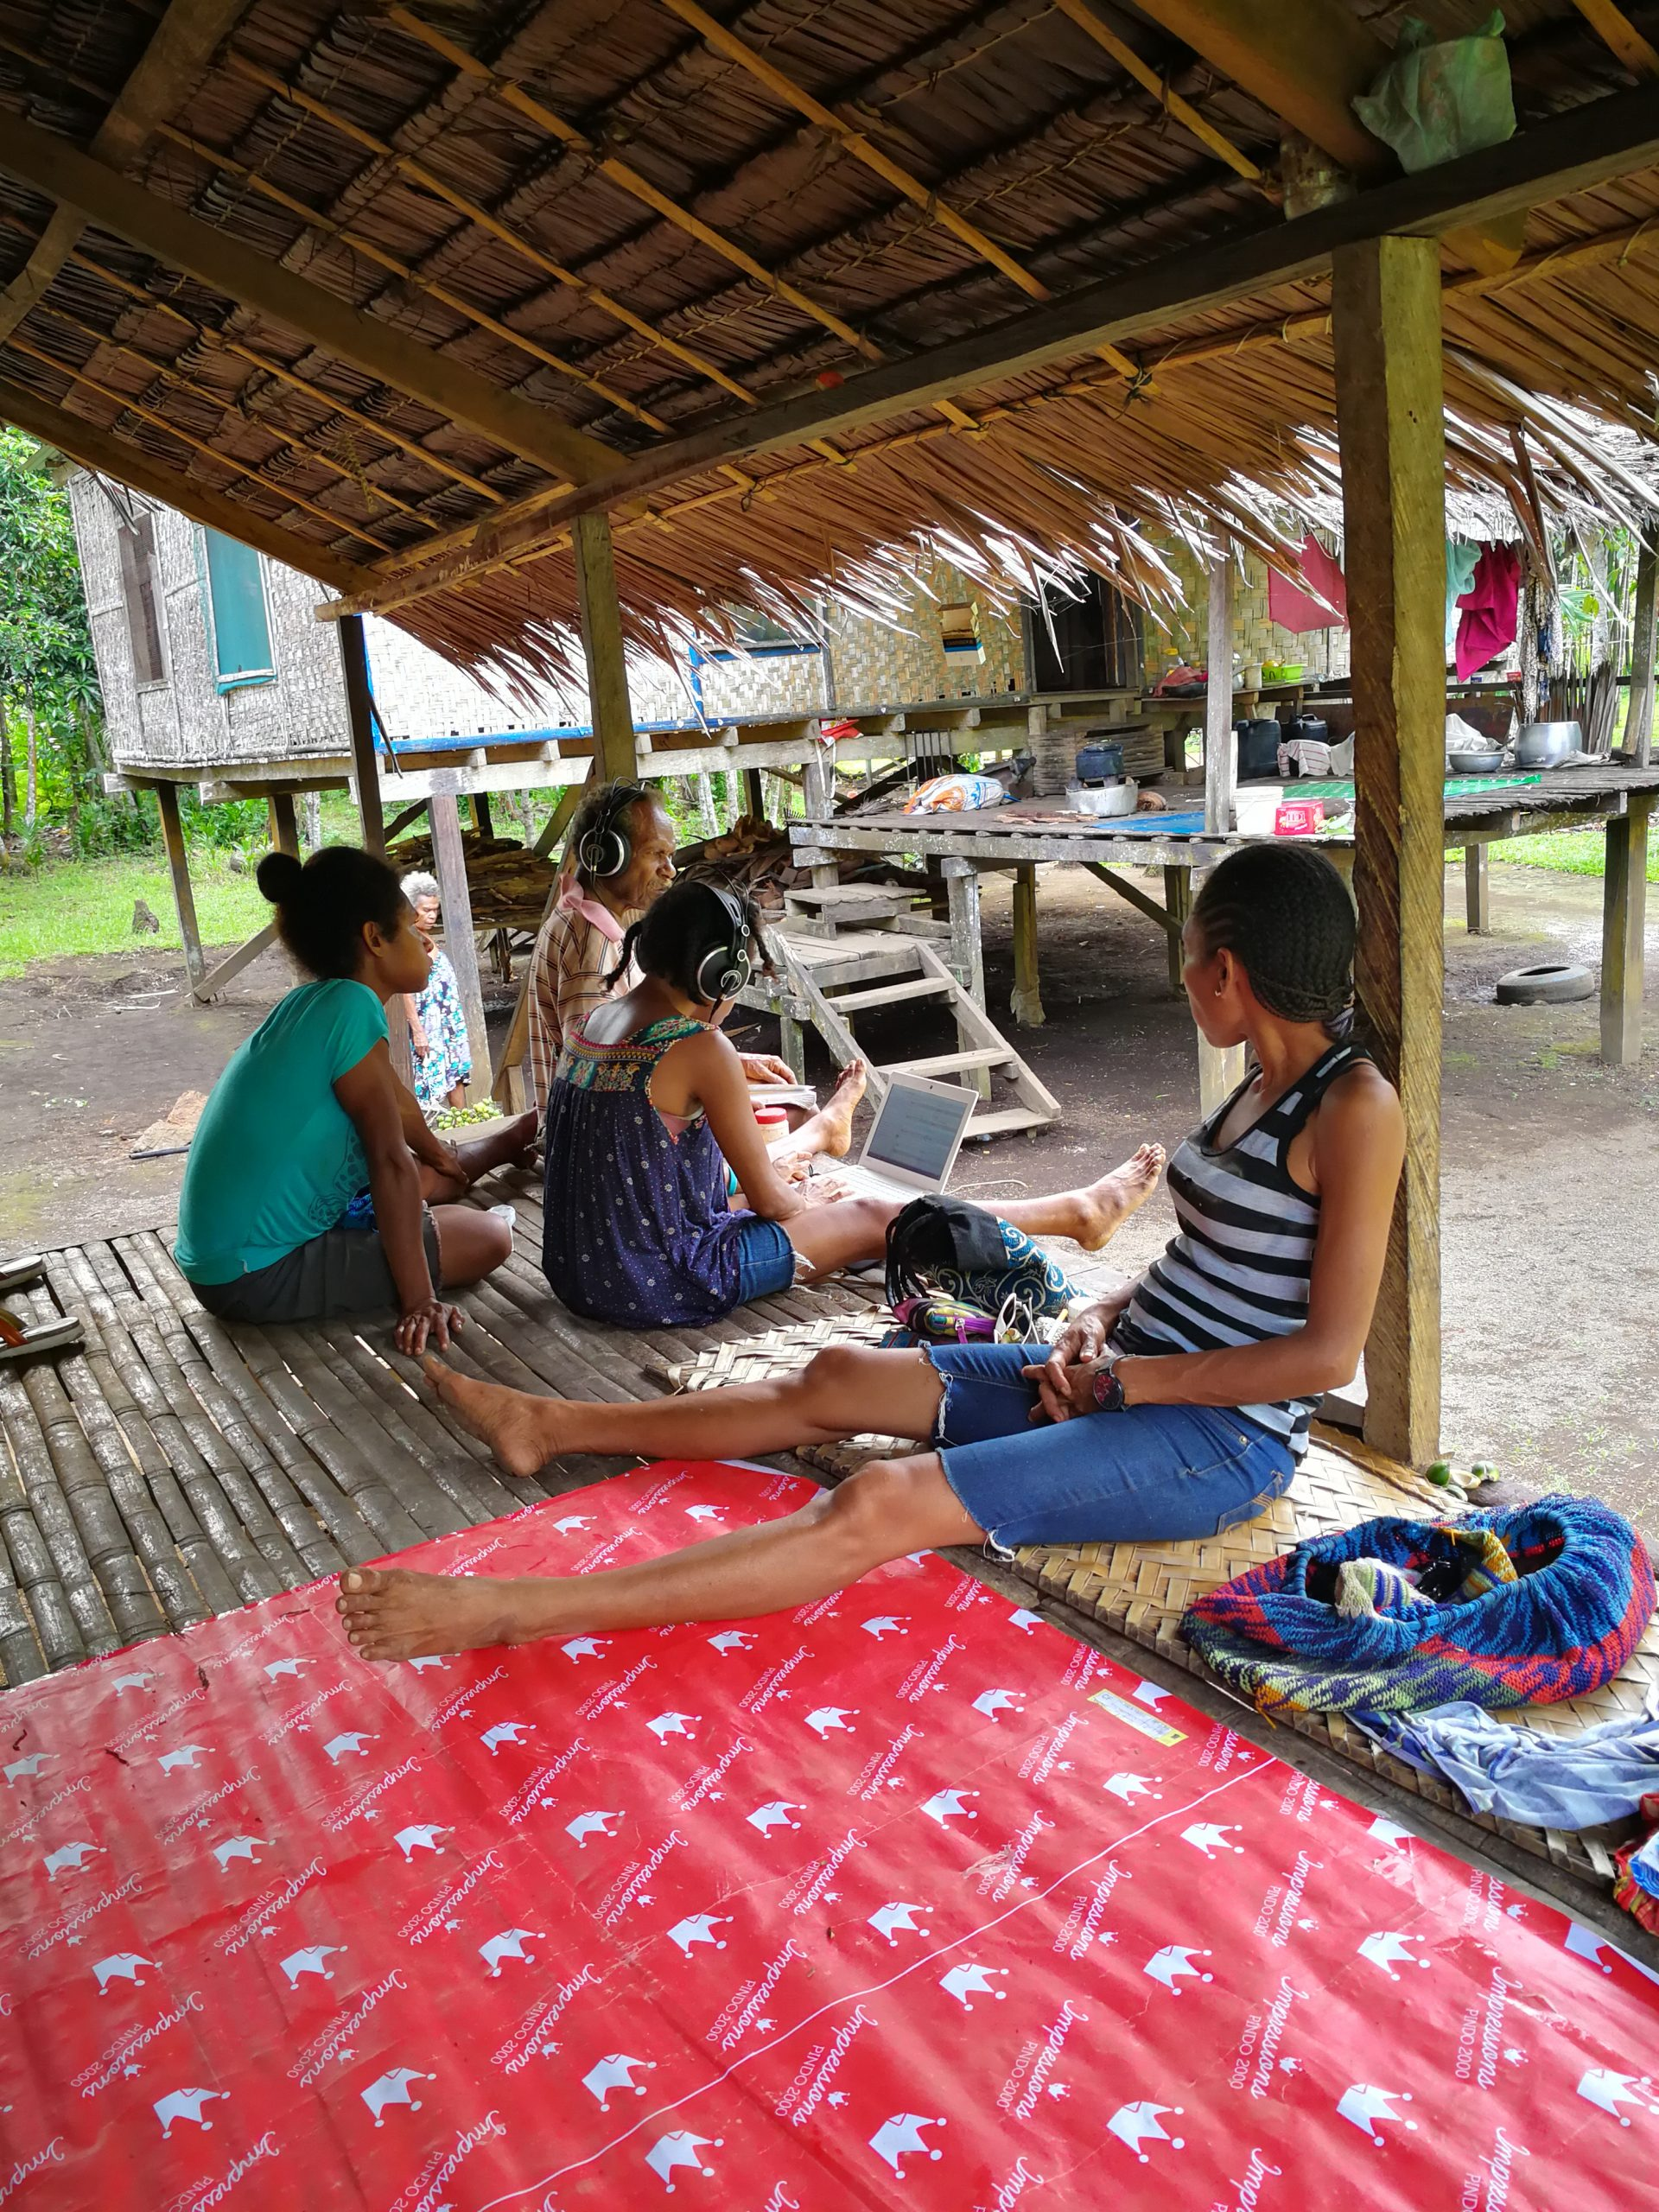 A group of people sit in a Papuan stilt house transcribing a text on a computer.